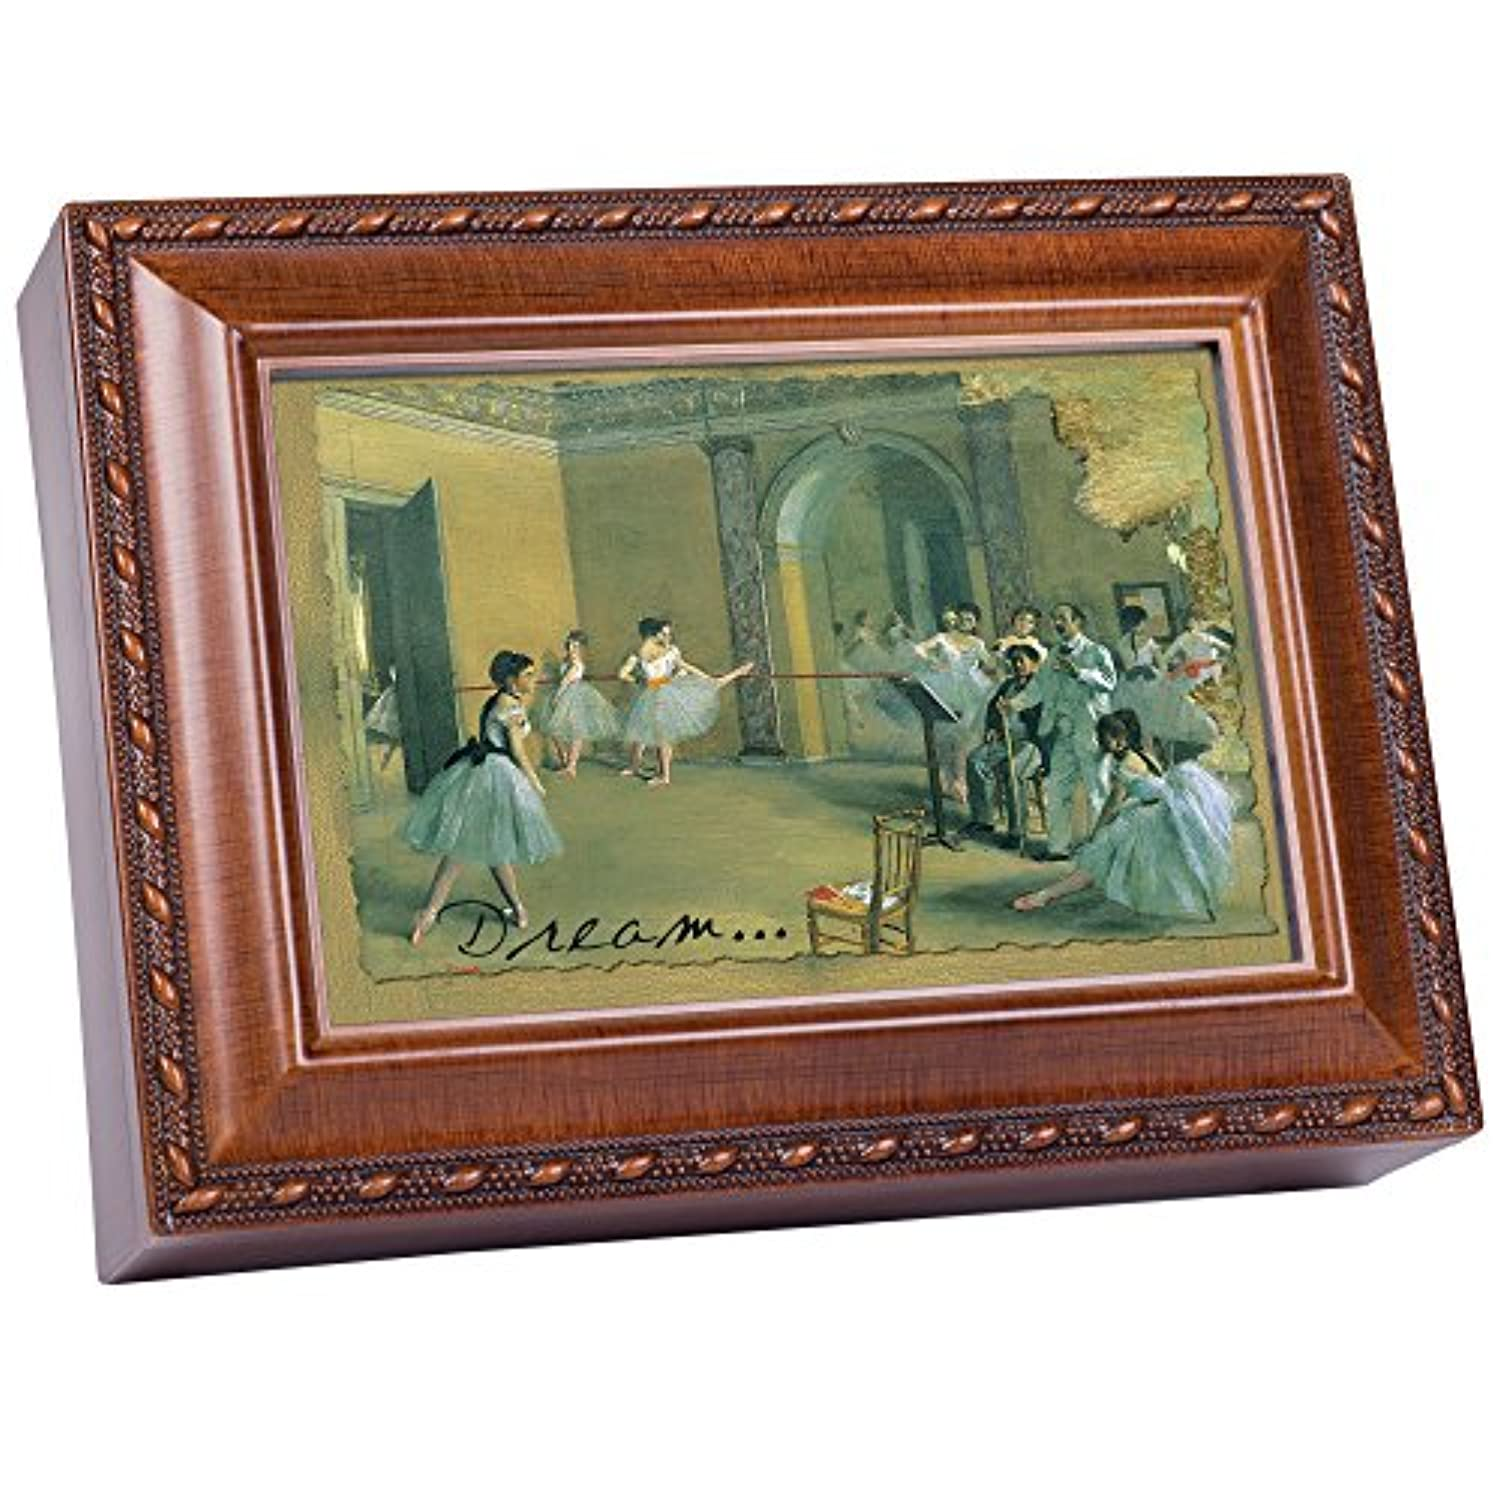 Cottage Garden Dream Dancers Woodgrain Music Box / Jewellery Box Plays Wonderful World